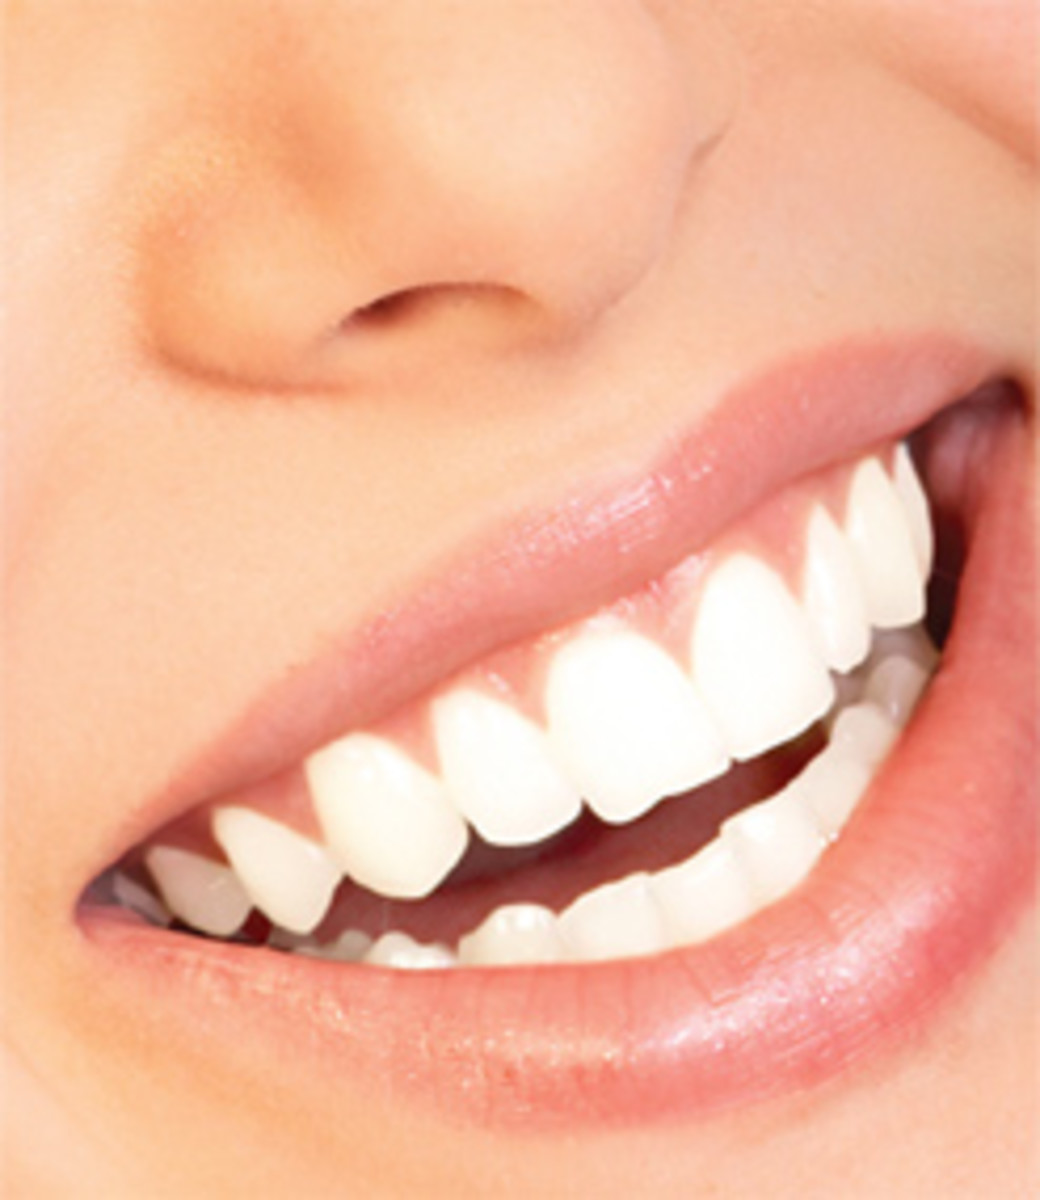 Teeth Whitening Made Easy And Naturally